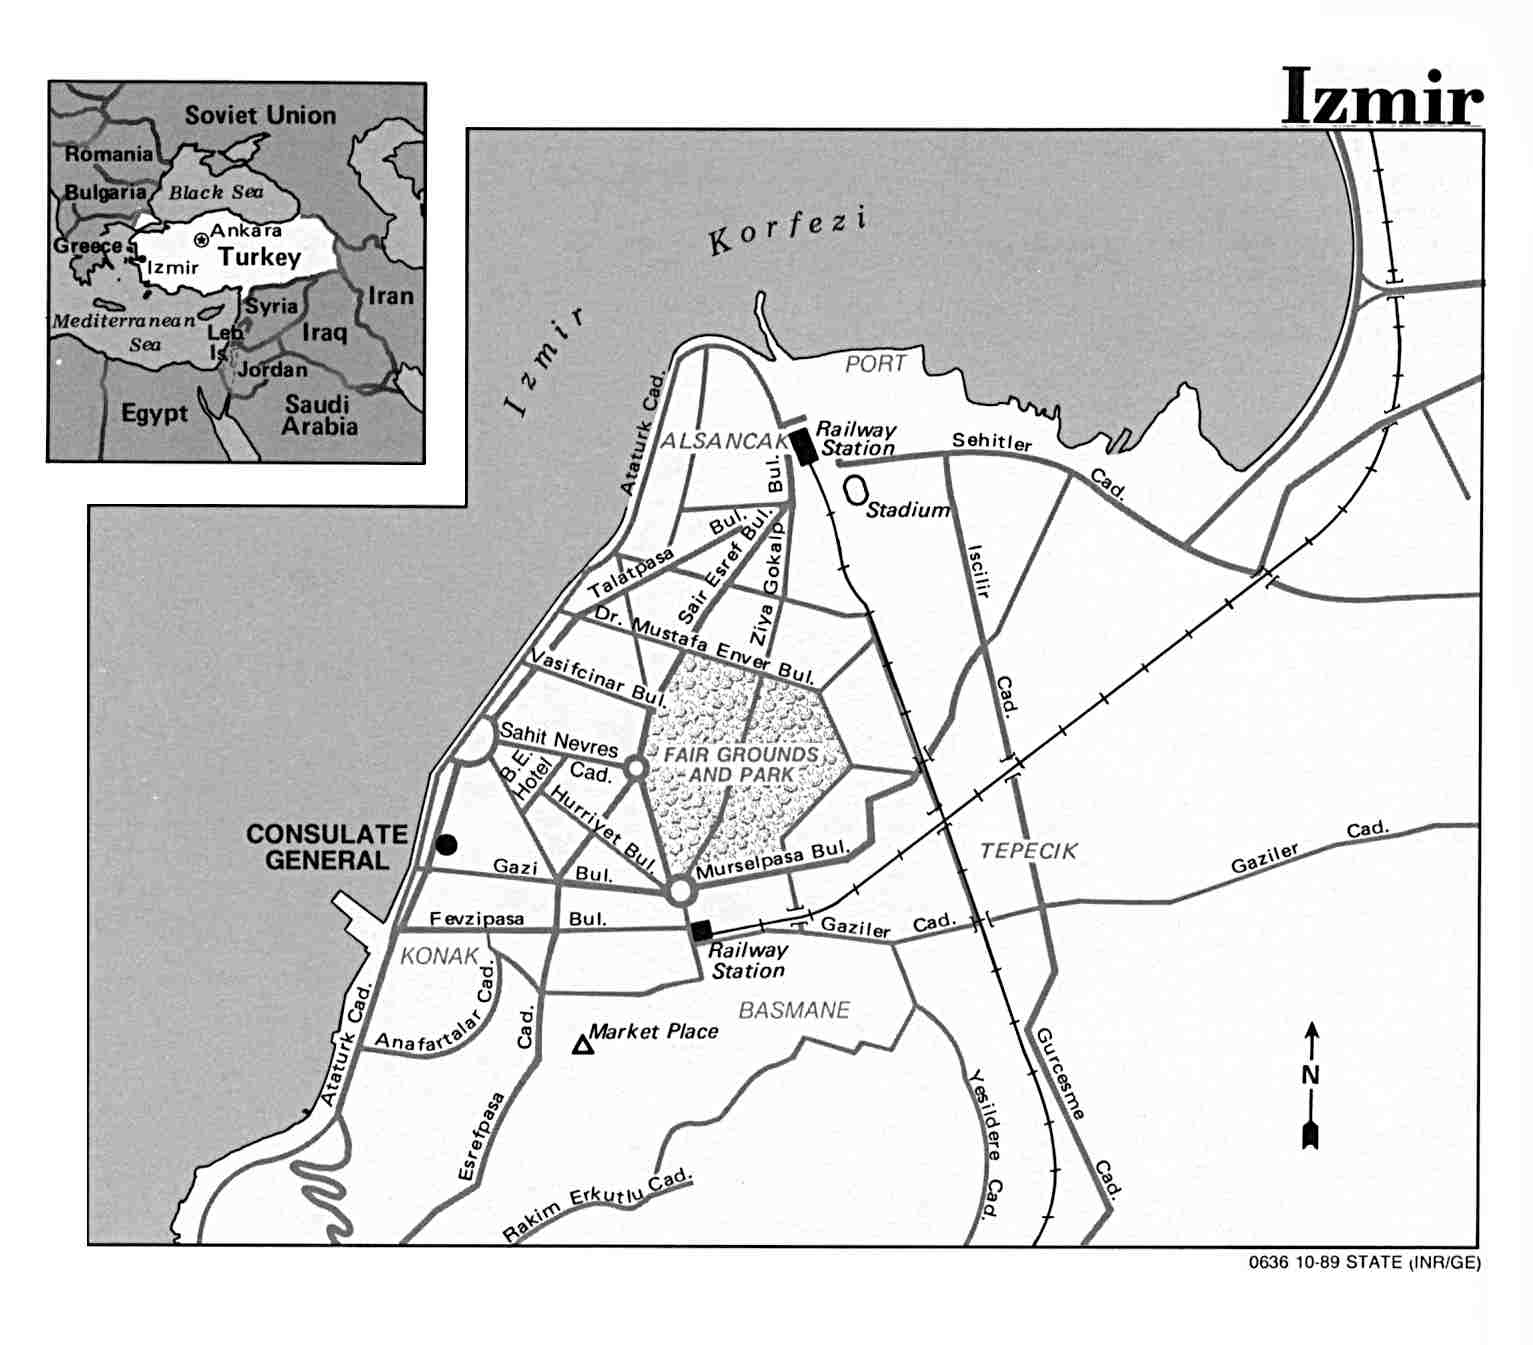 Izmir City Map, Turkey